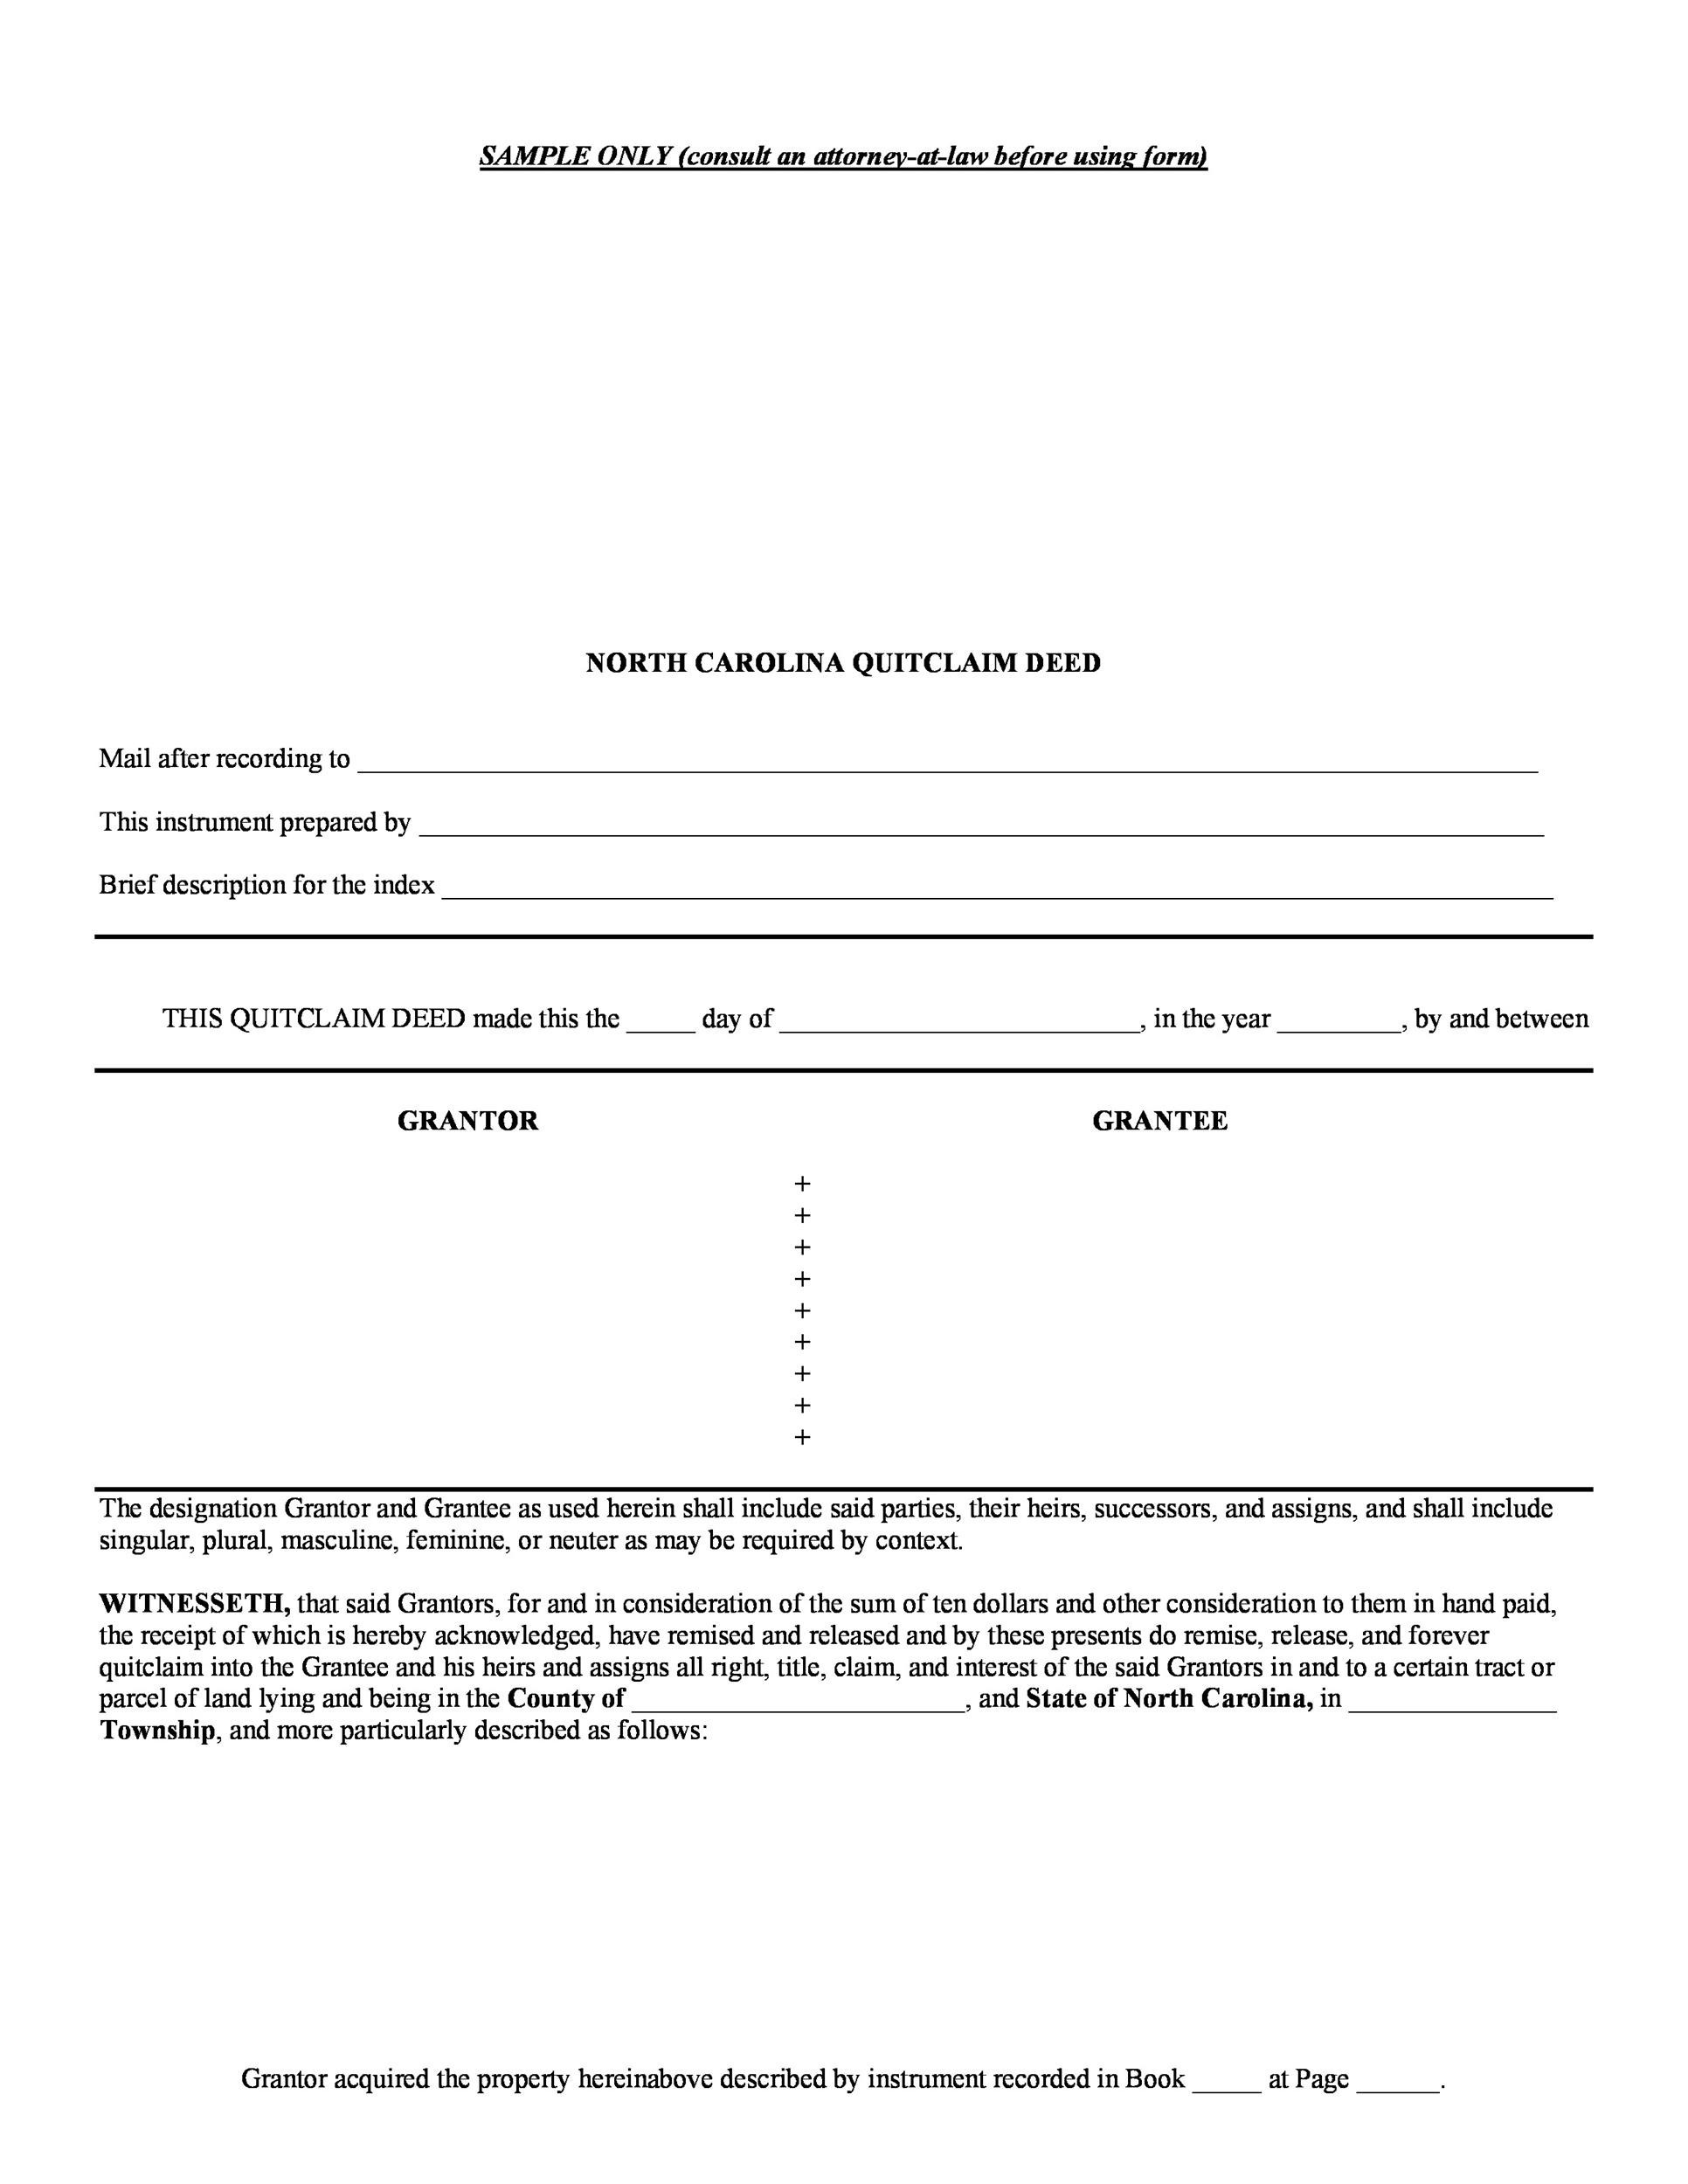 Quit Claim Deed Forms